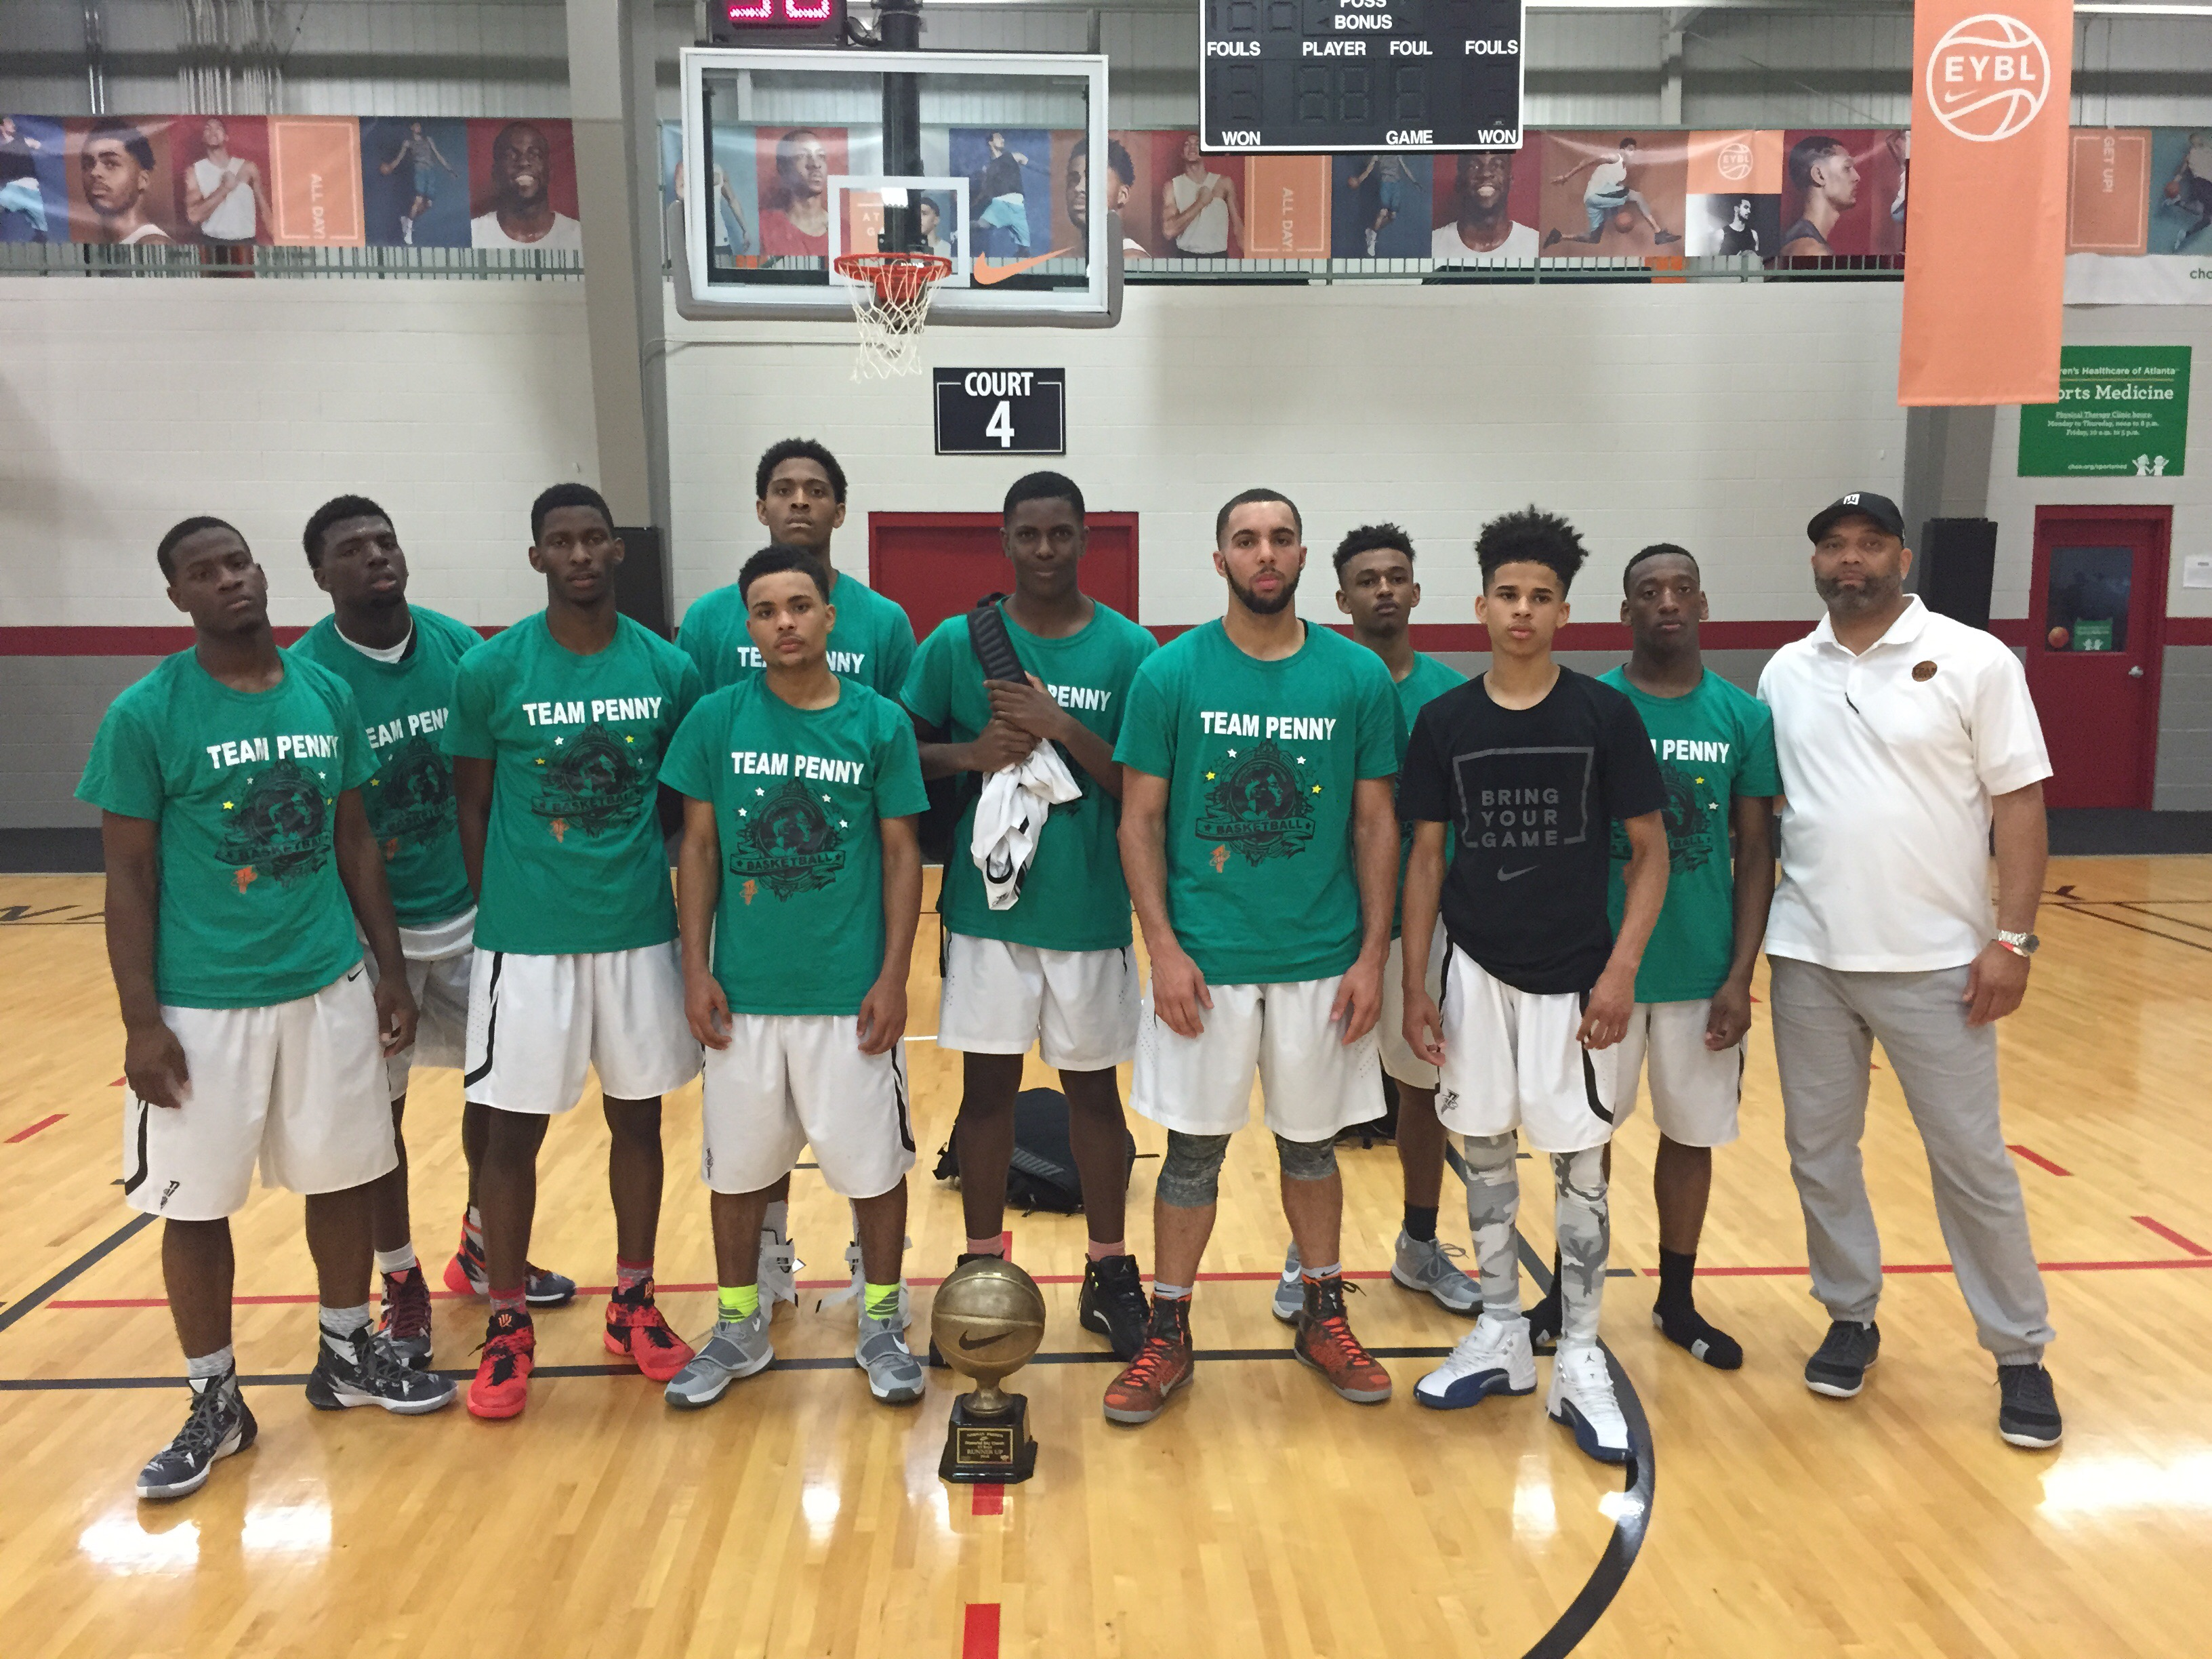 Team Penny Select 17u MDC 2016 Runner Up